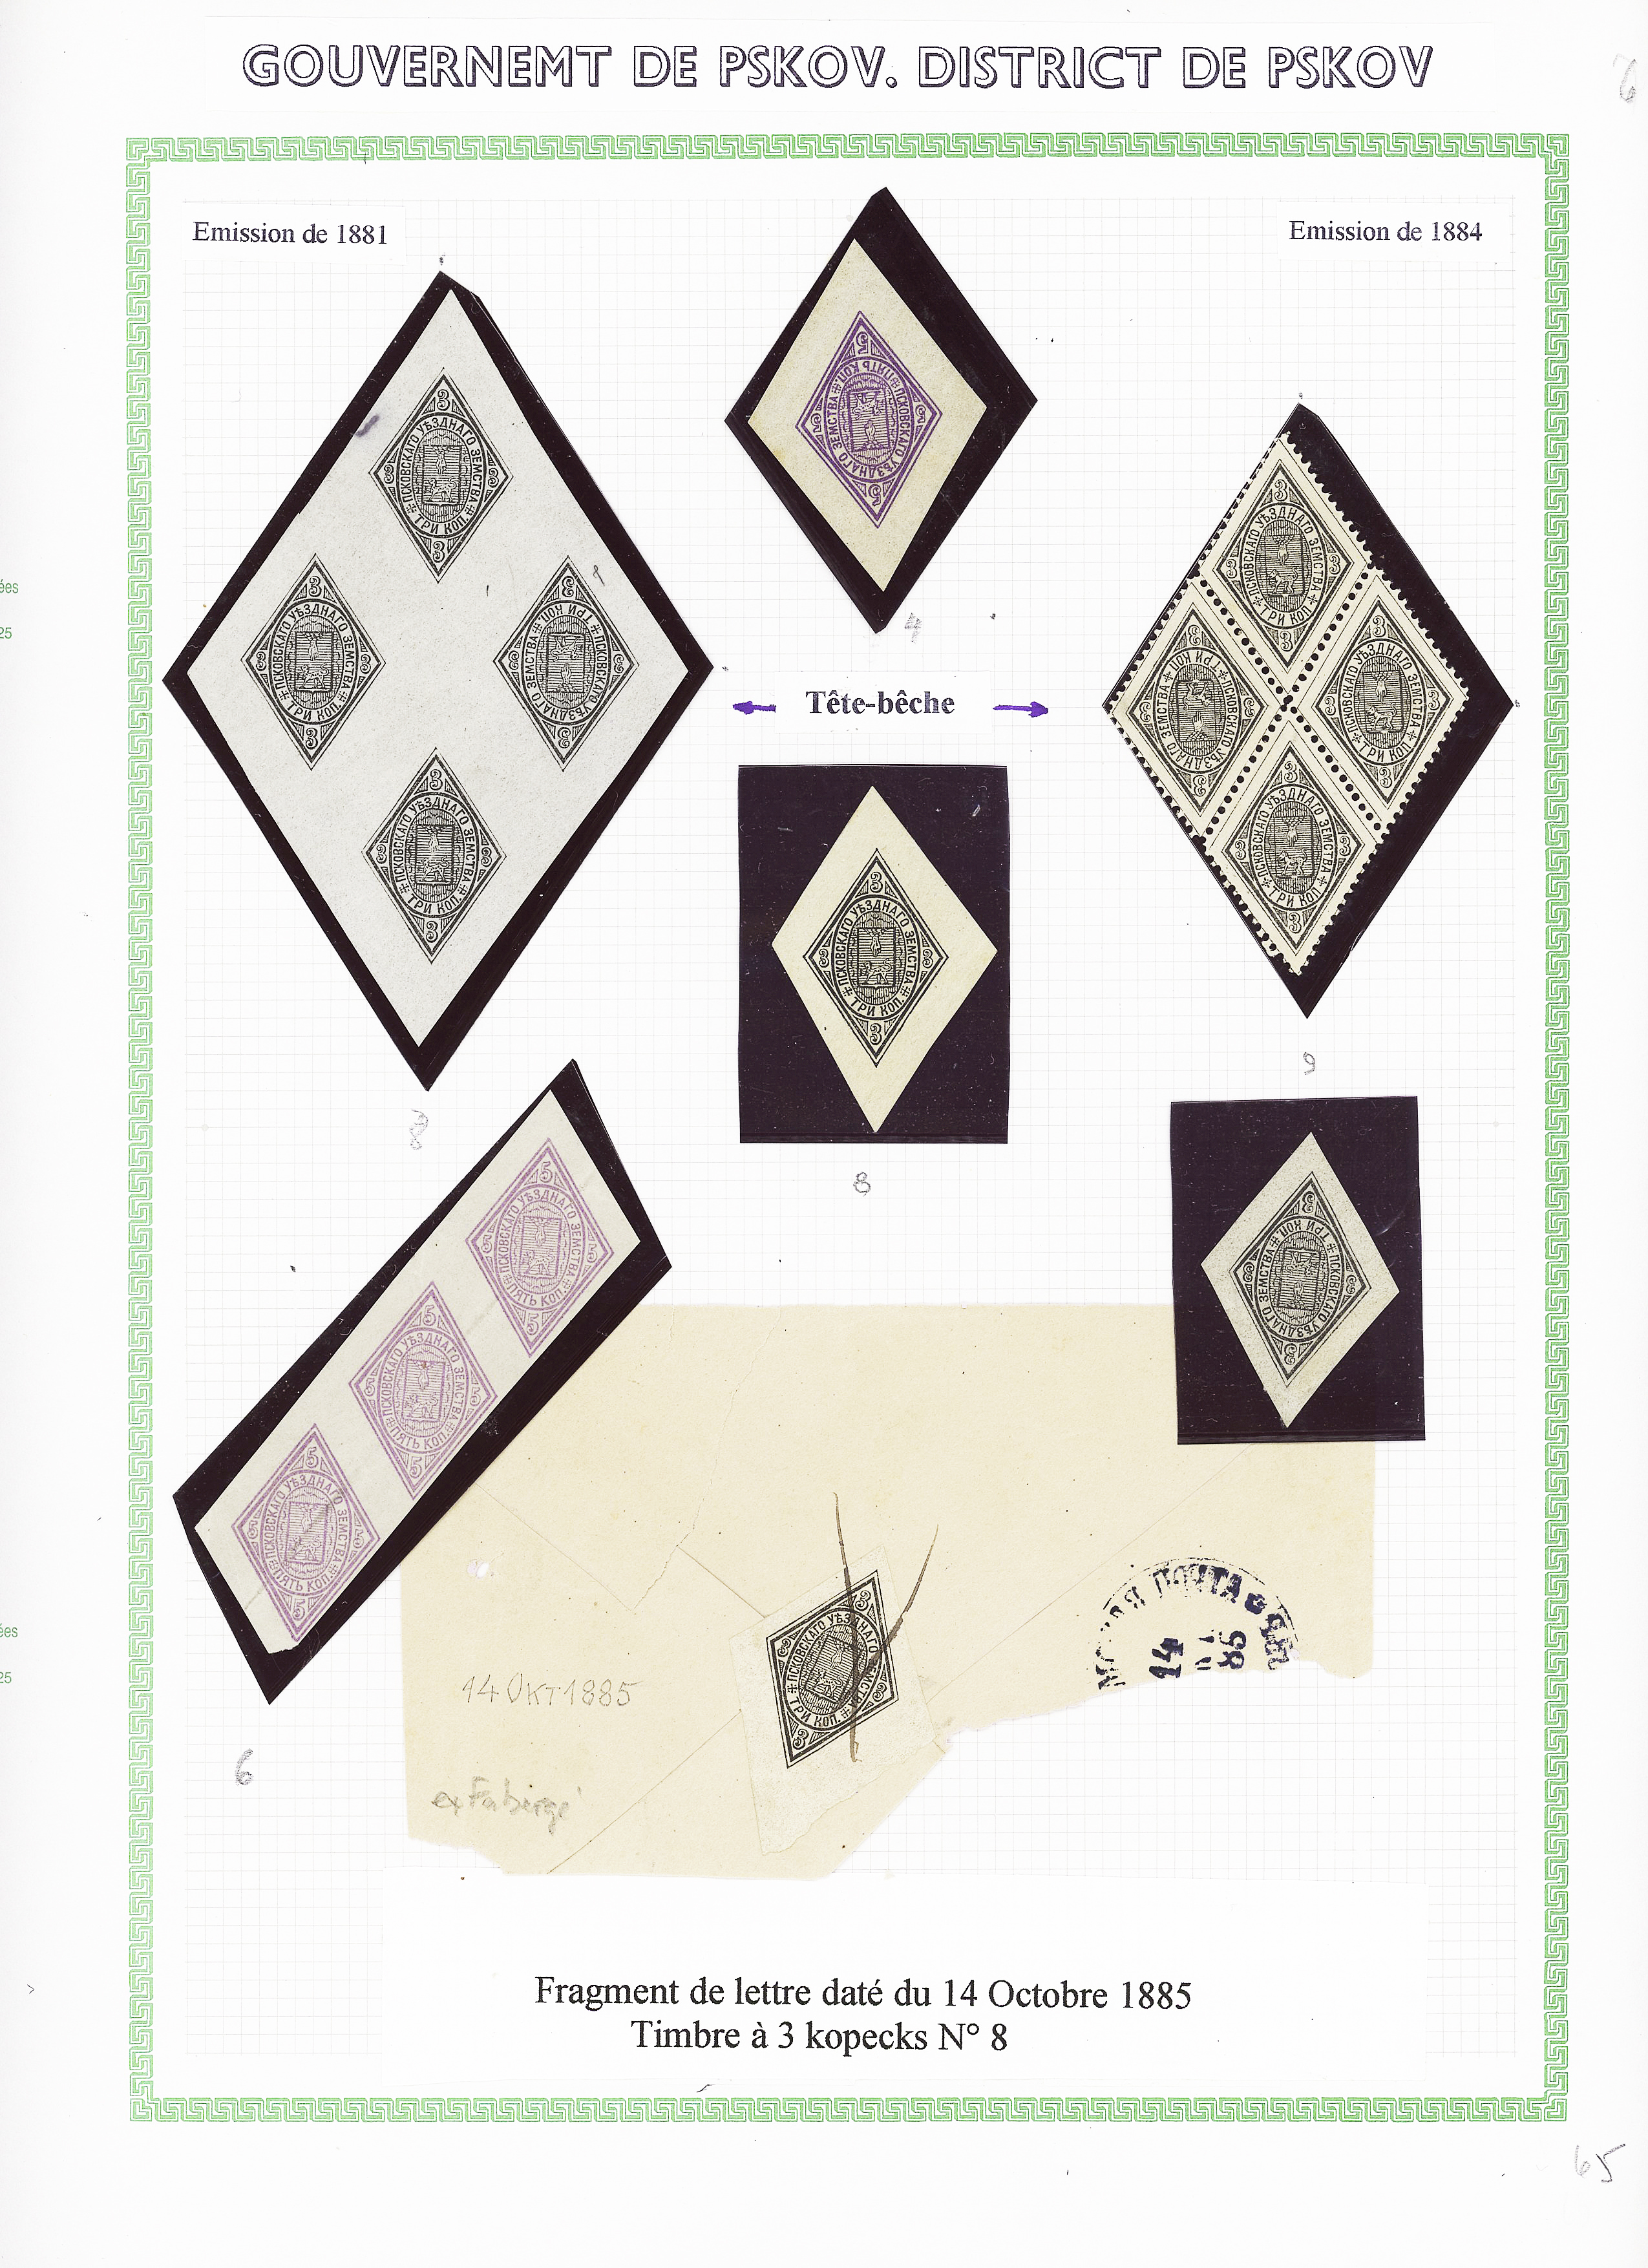 Lot 538 - Eastern Europe » RUSSIA - ZEMSTVOS » Pskov (Pskov Government)  -  Le Timbre Classique SA SALE ON OFFERS N ° 37 PARIS